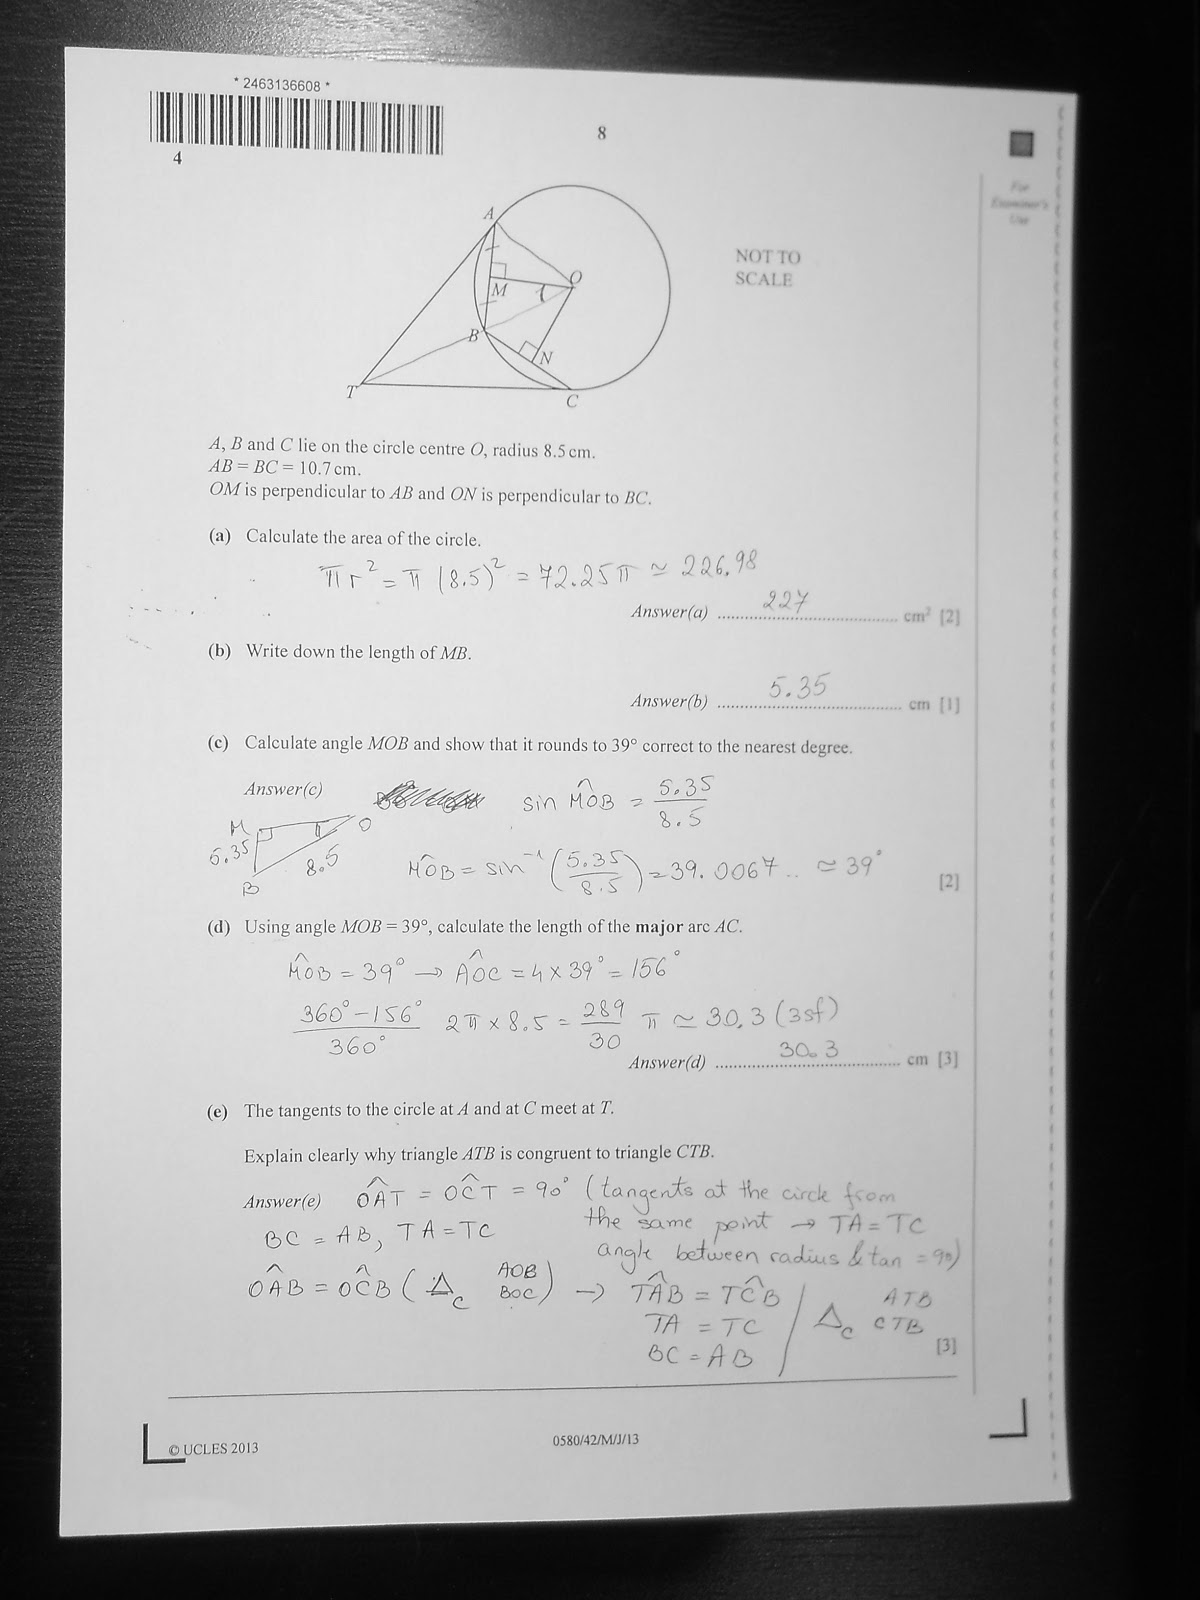 CIE IGCSE 0580 Mathematics Paper 4 (Extended), May/June 2013 ...